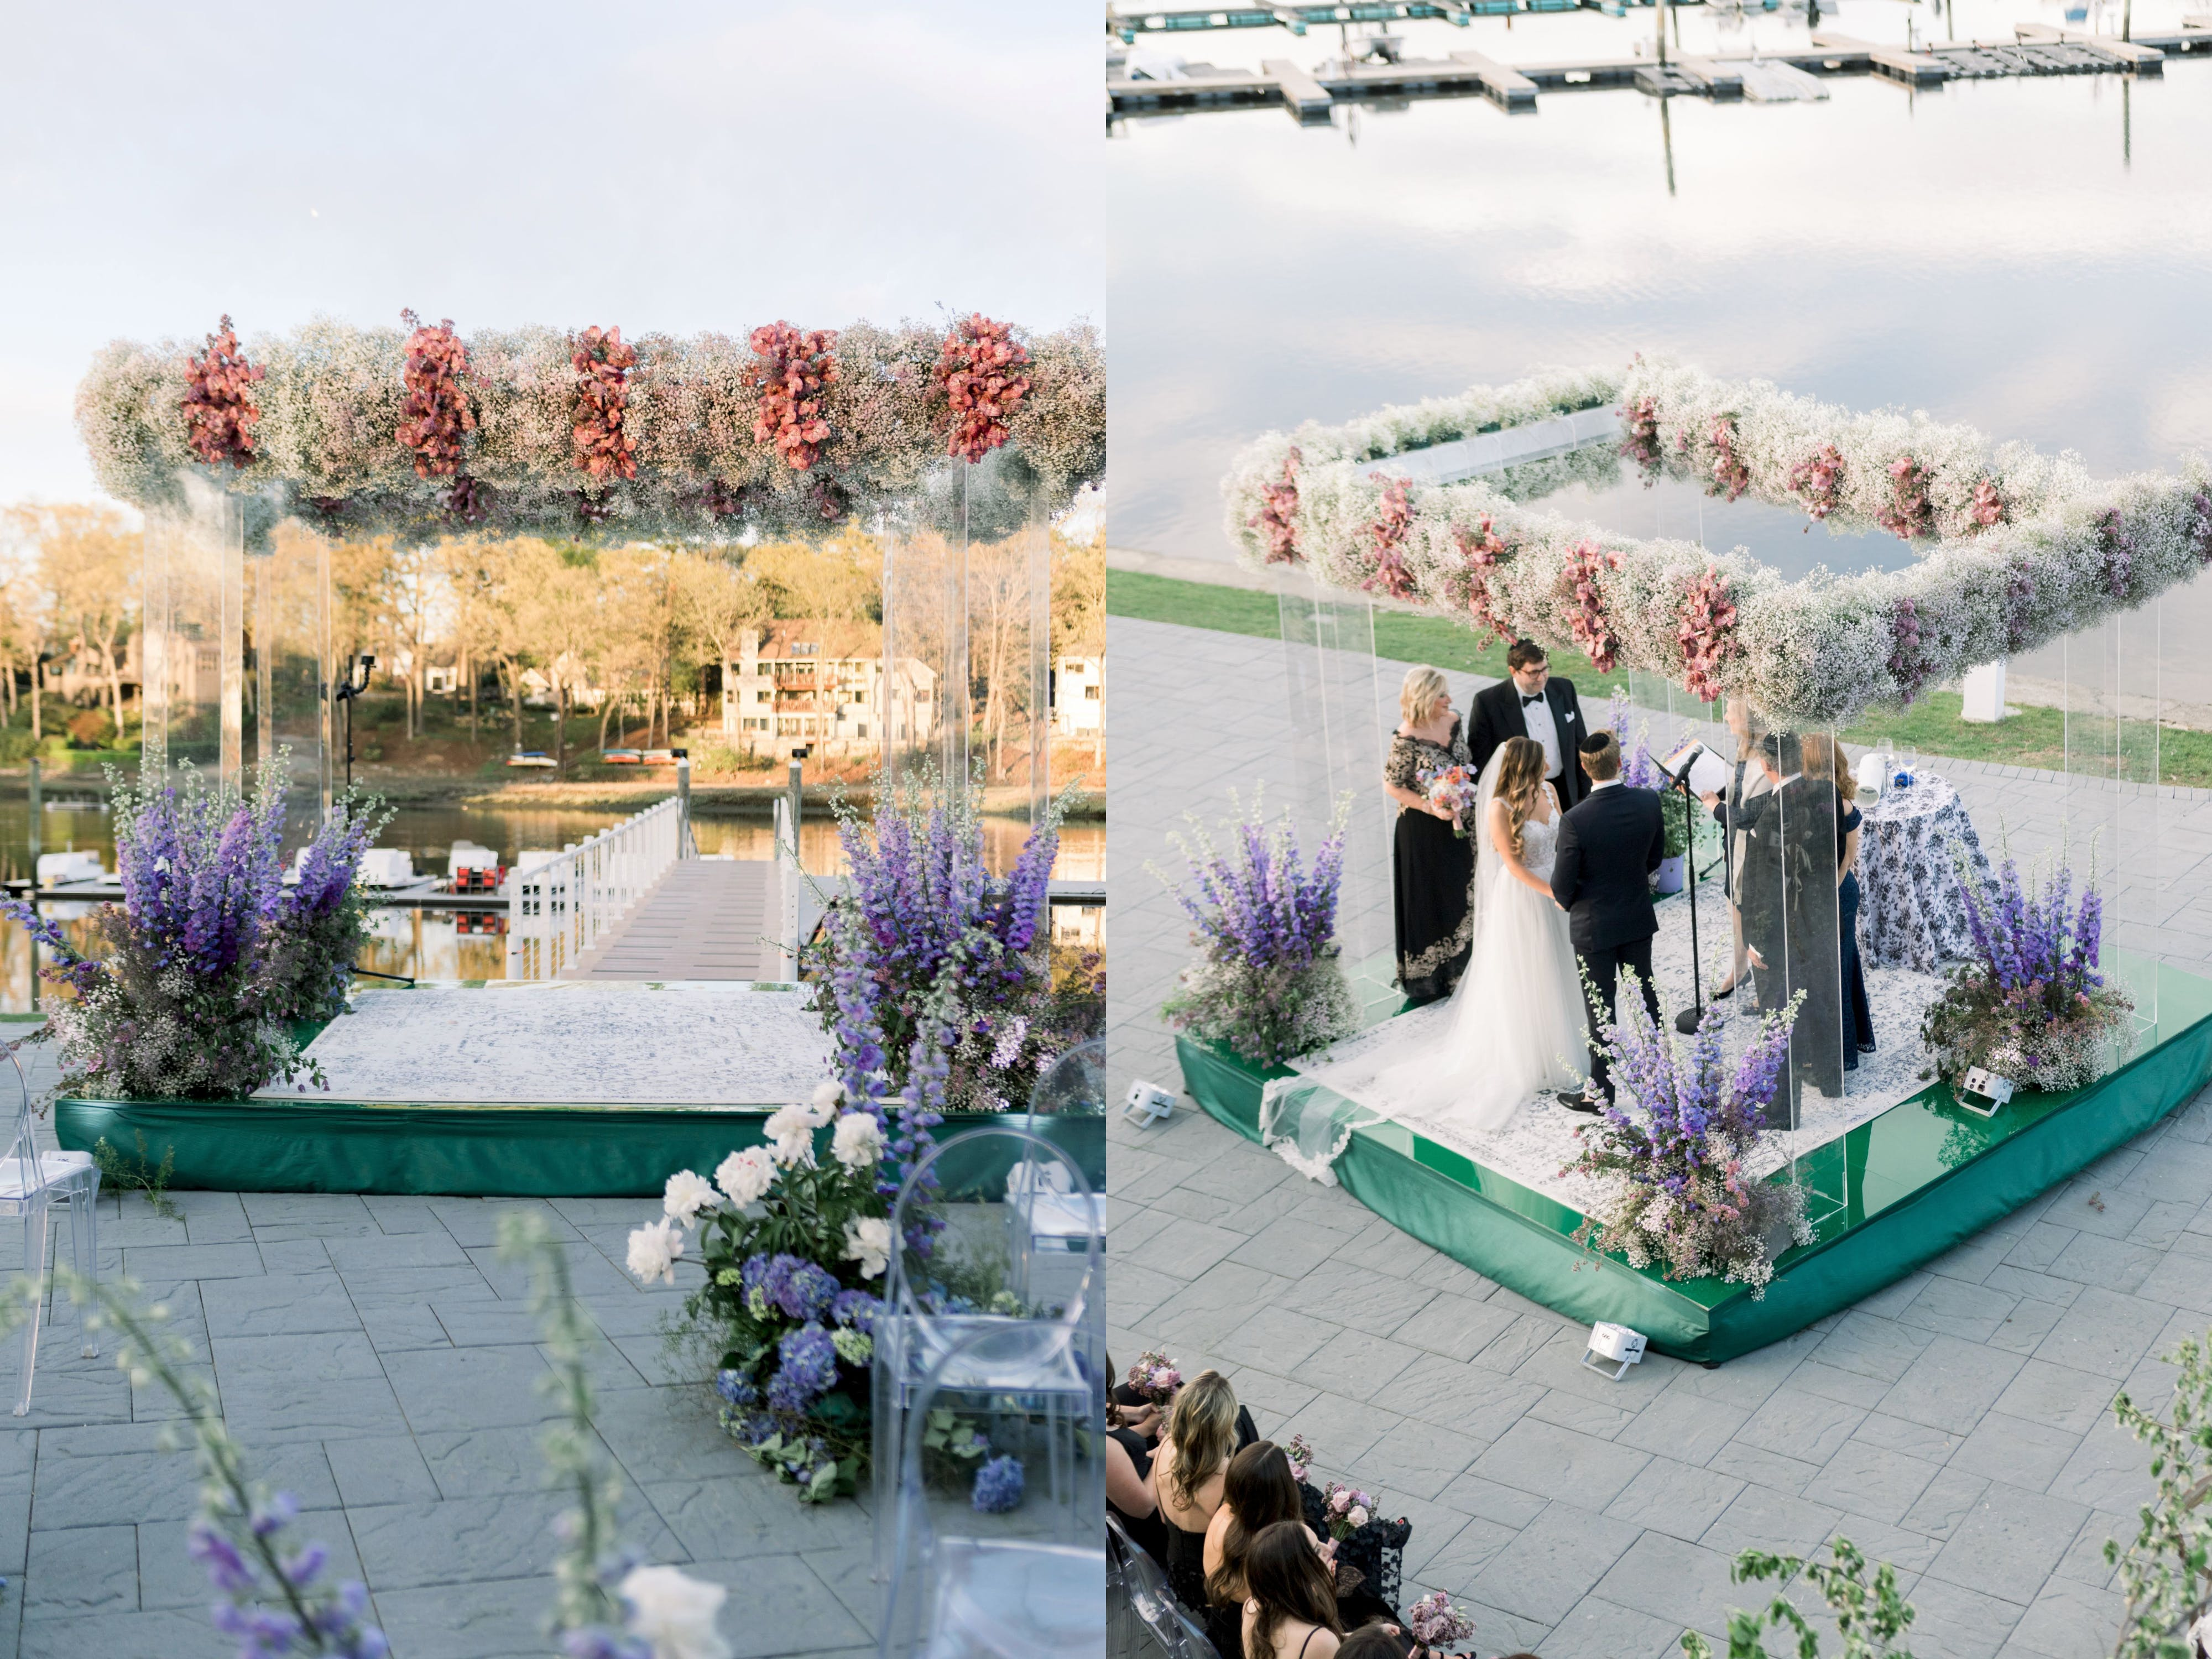 Lucite Wedding Chuppah Crowned With Baby's Breath and Interspersed Pink Blooms   PartySlate